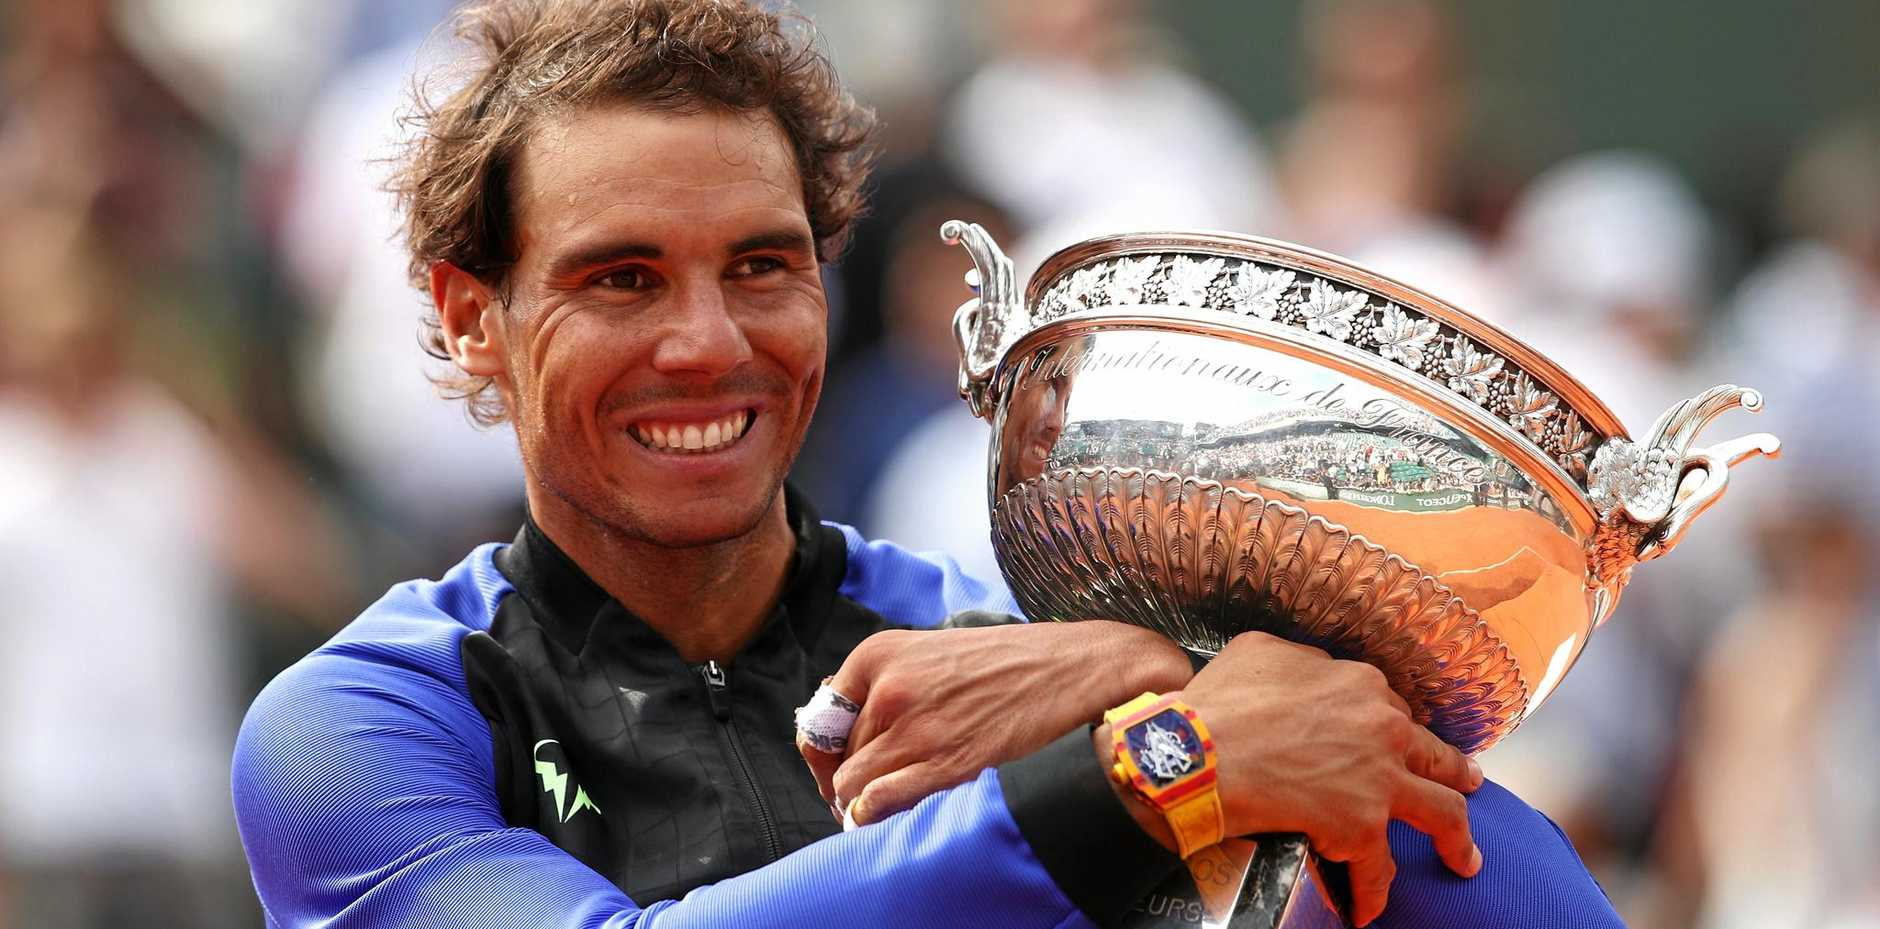 Rafael Nadal celebrates victory after the men's singles final against Stan Wawrinka